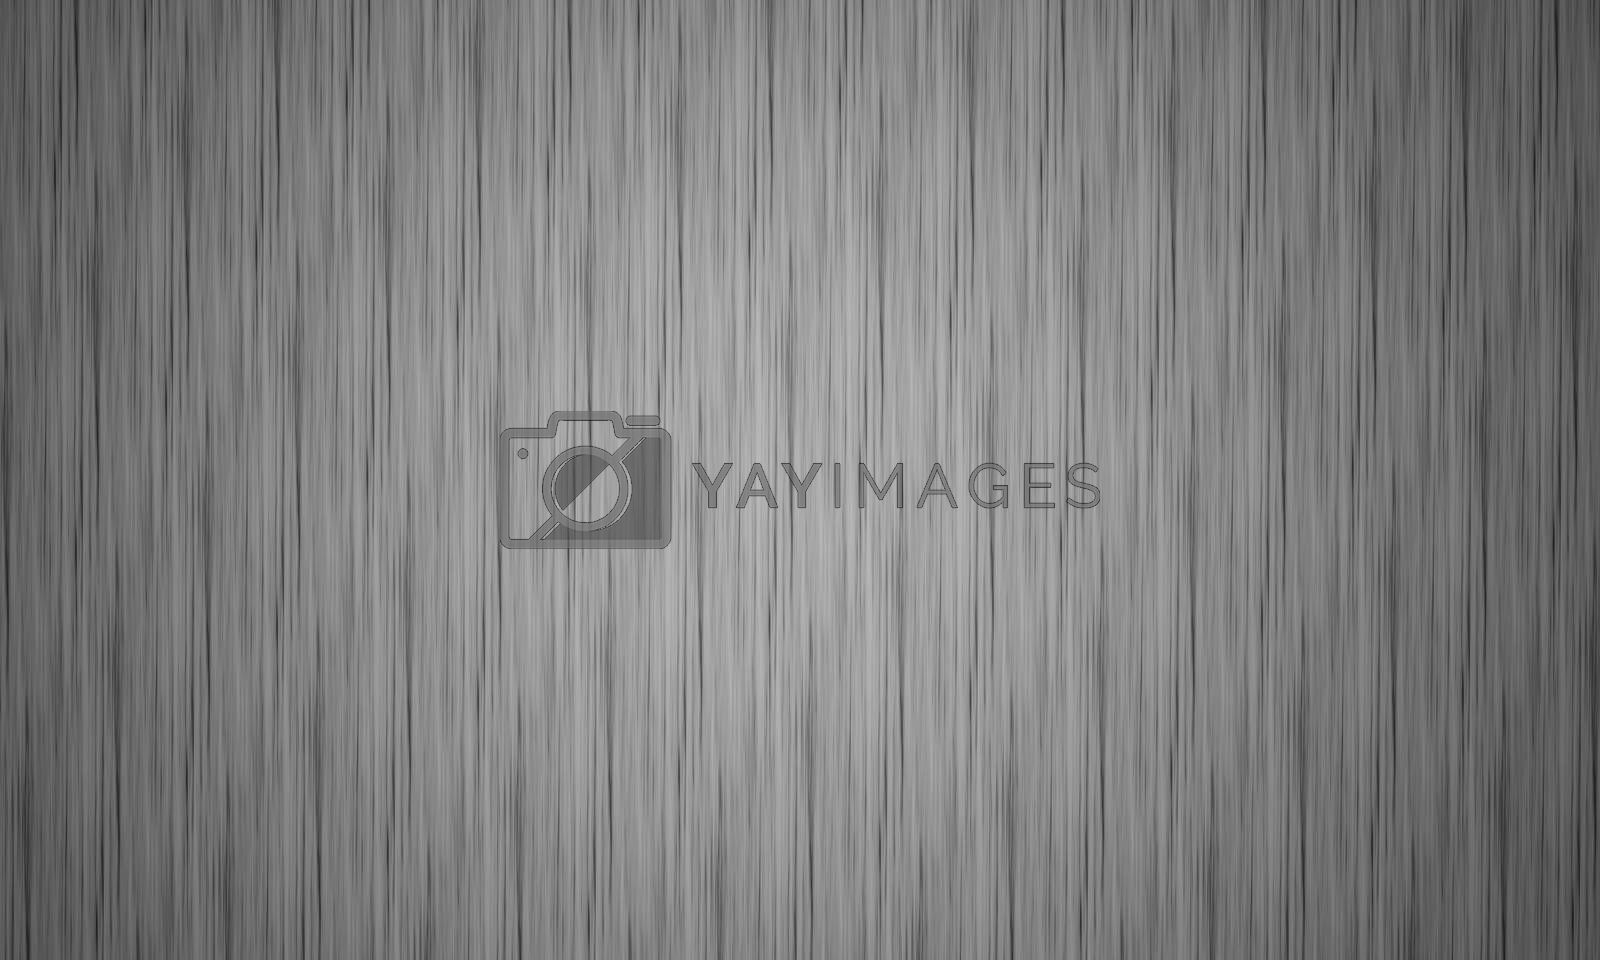 black and white vertical lines and pattern use for background and wallpaper. 3D software rendering.